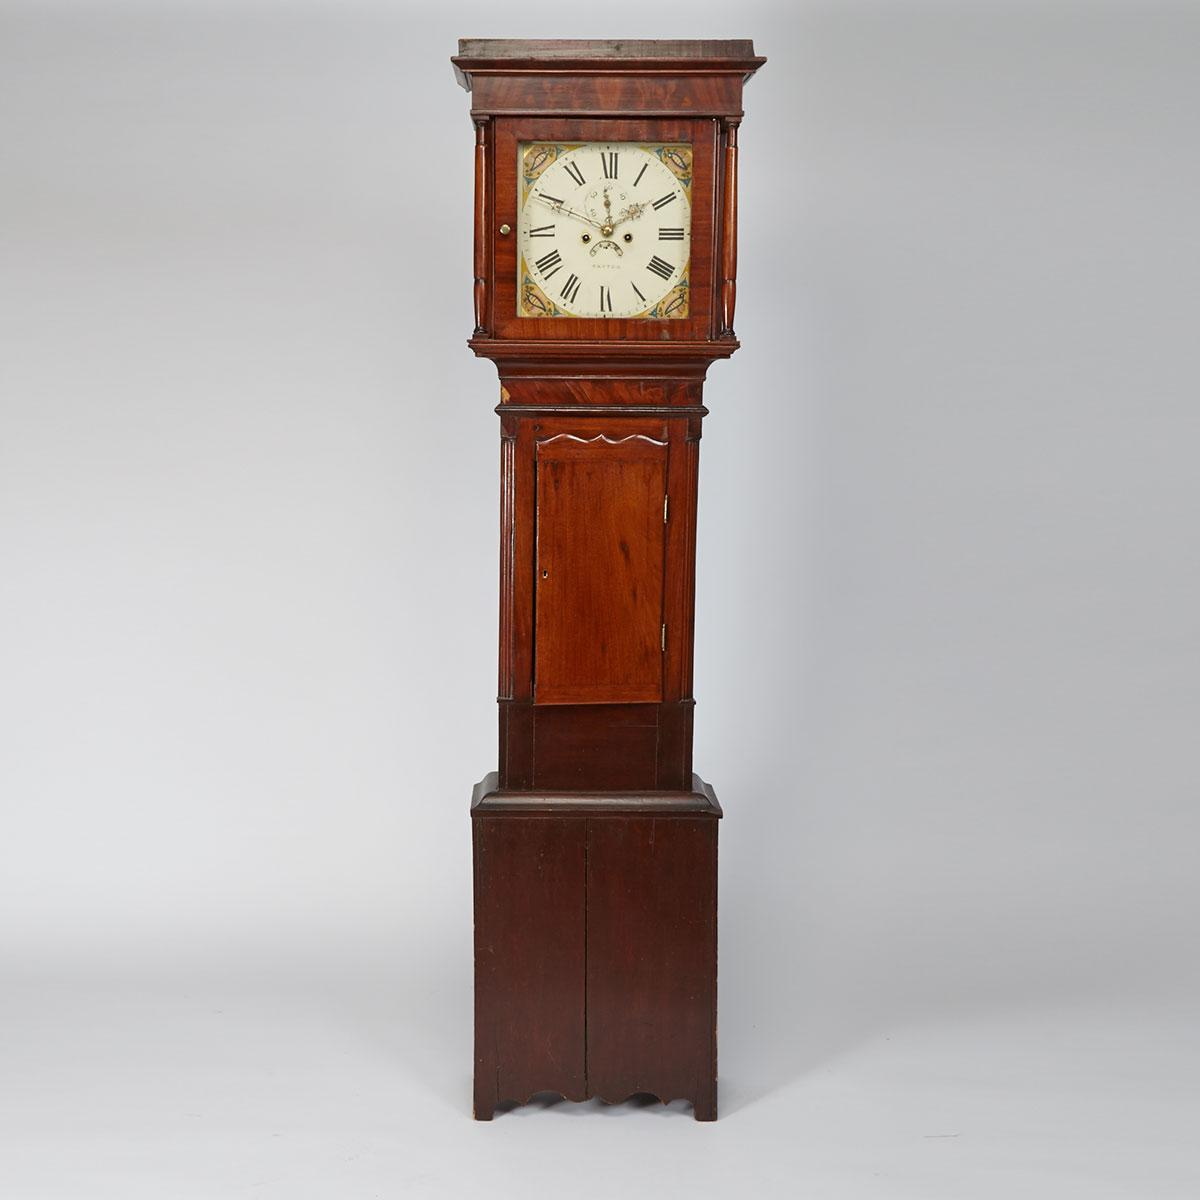 English Mahogany Tall Case Clock, Patton, 19th century